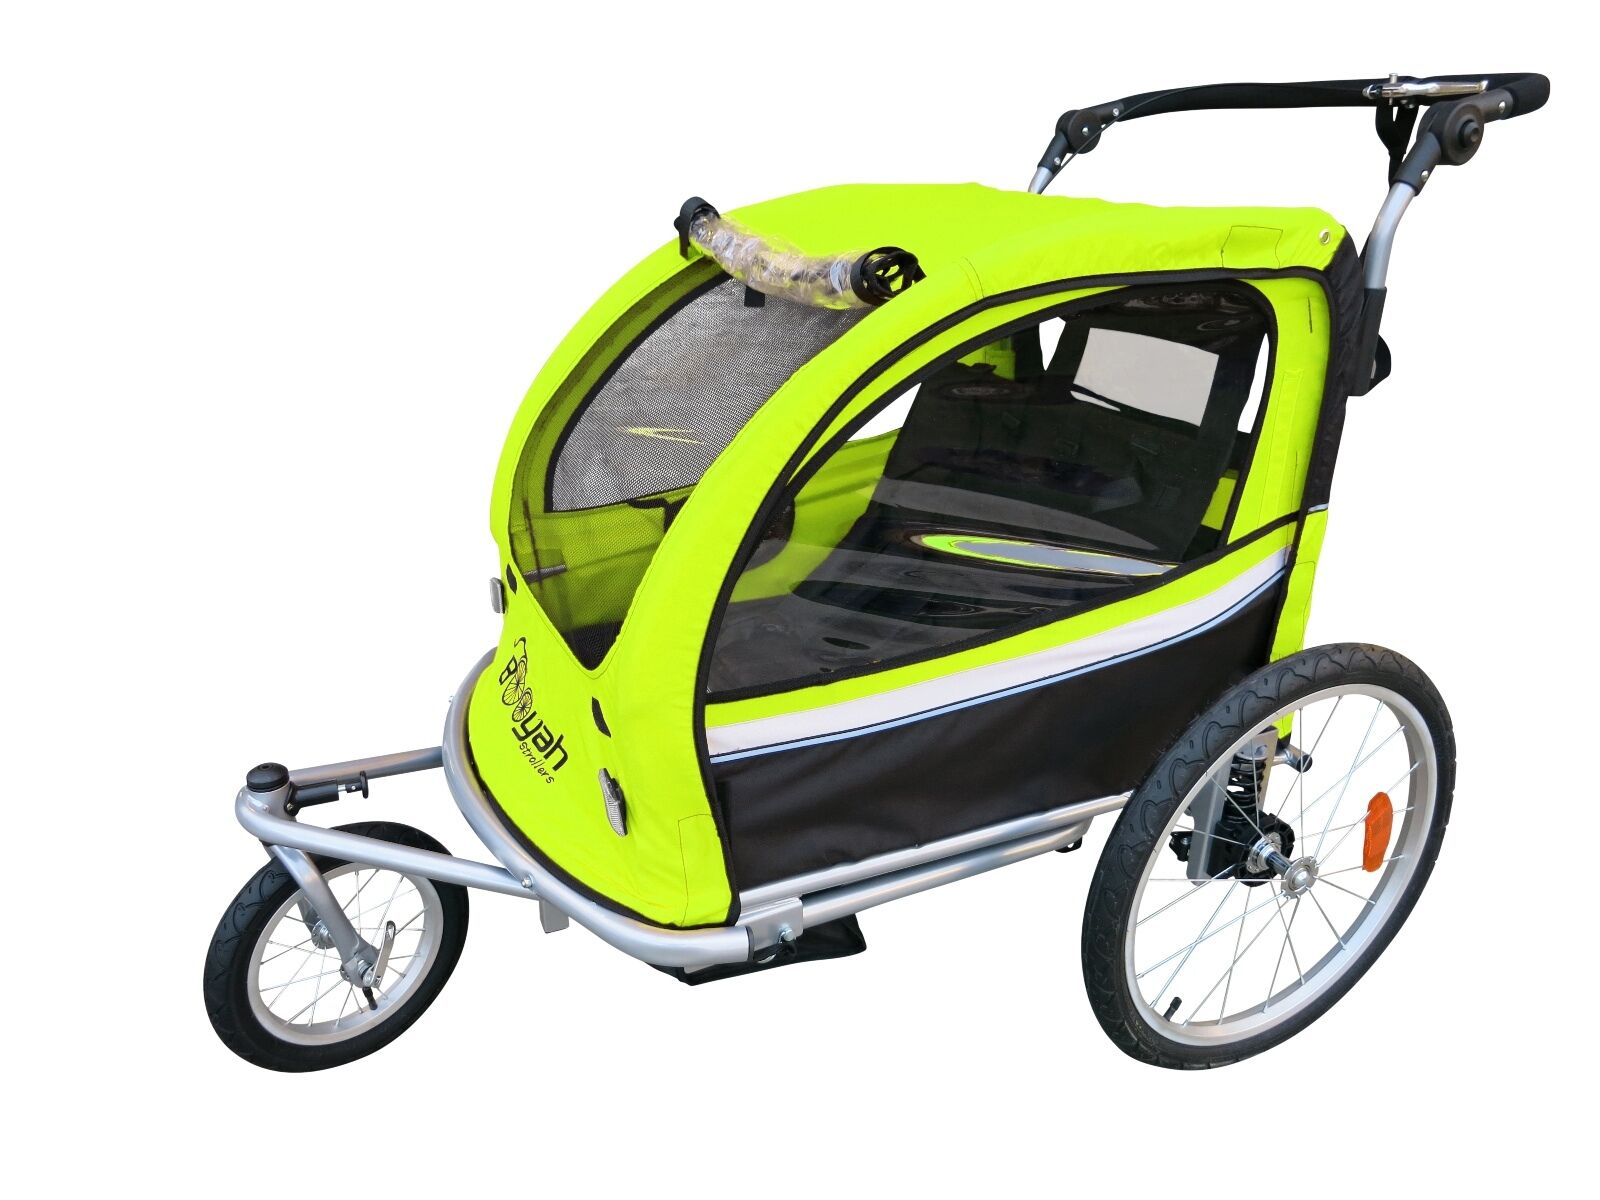 Booyah Strollers Baby Child II Bike Bicycle Trailer, Strolle